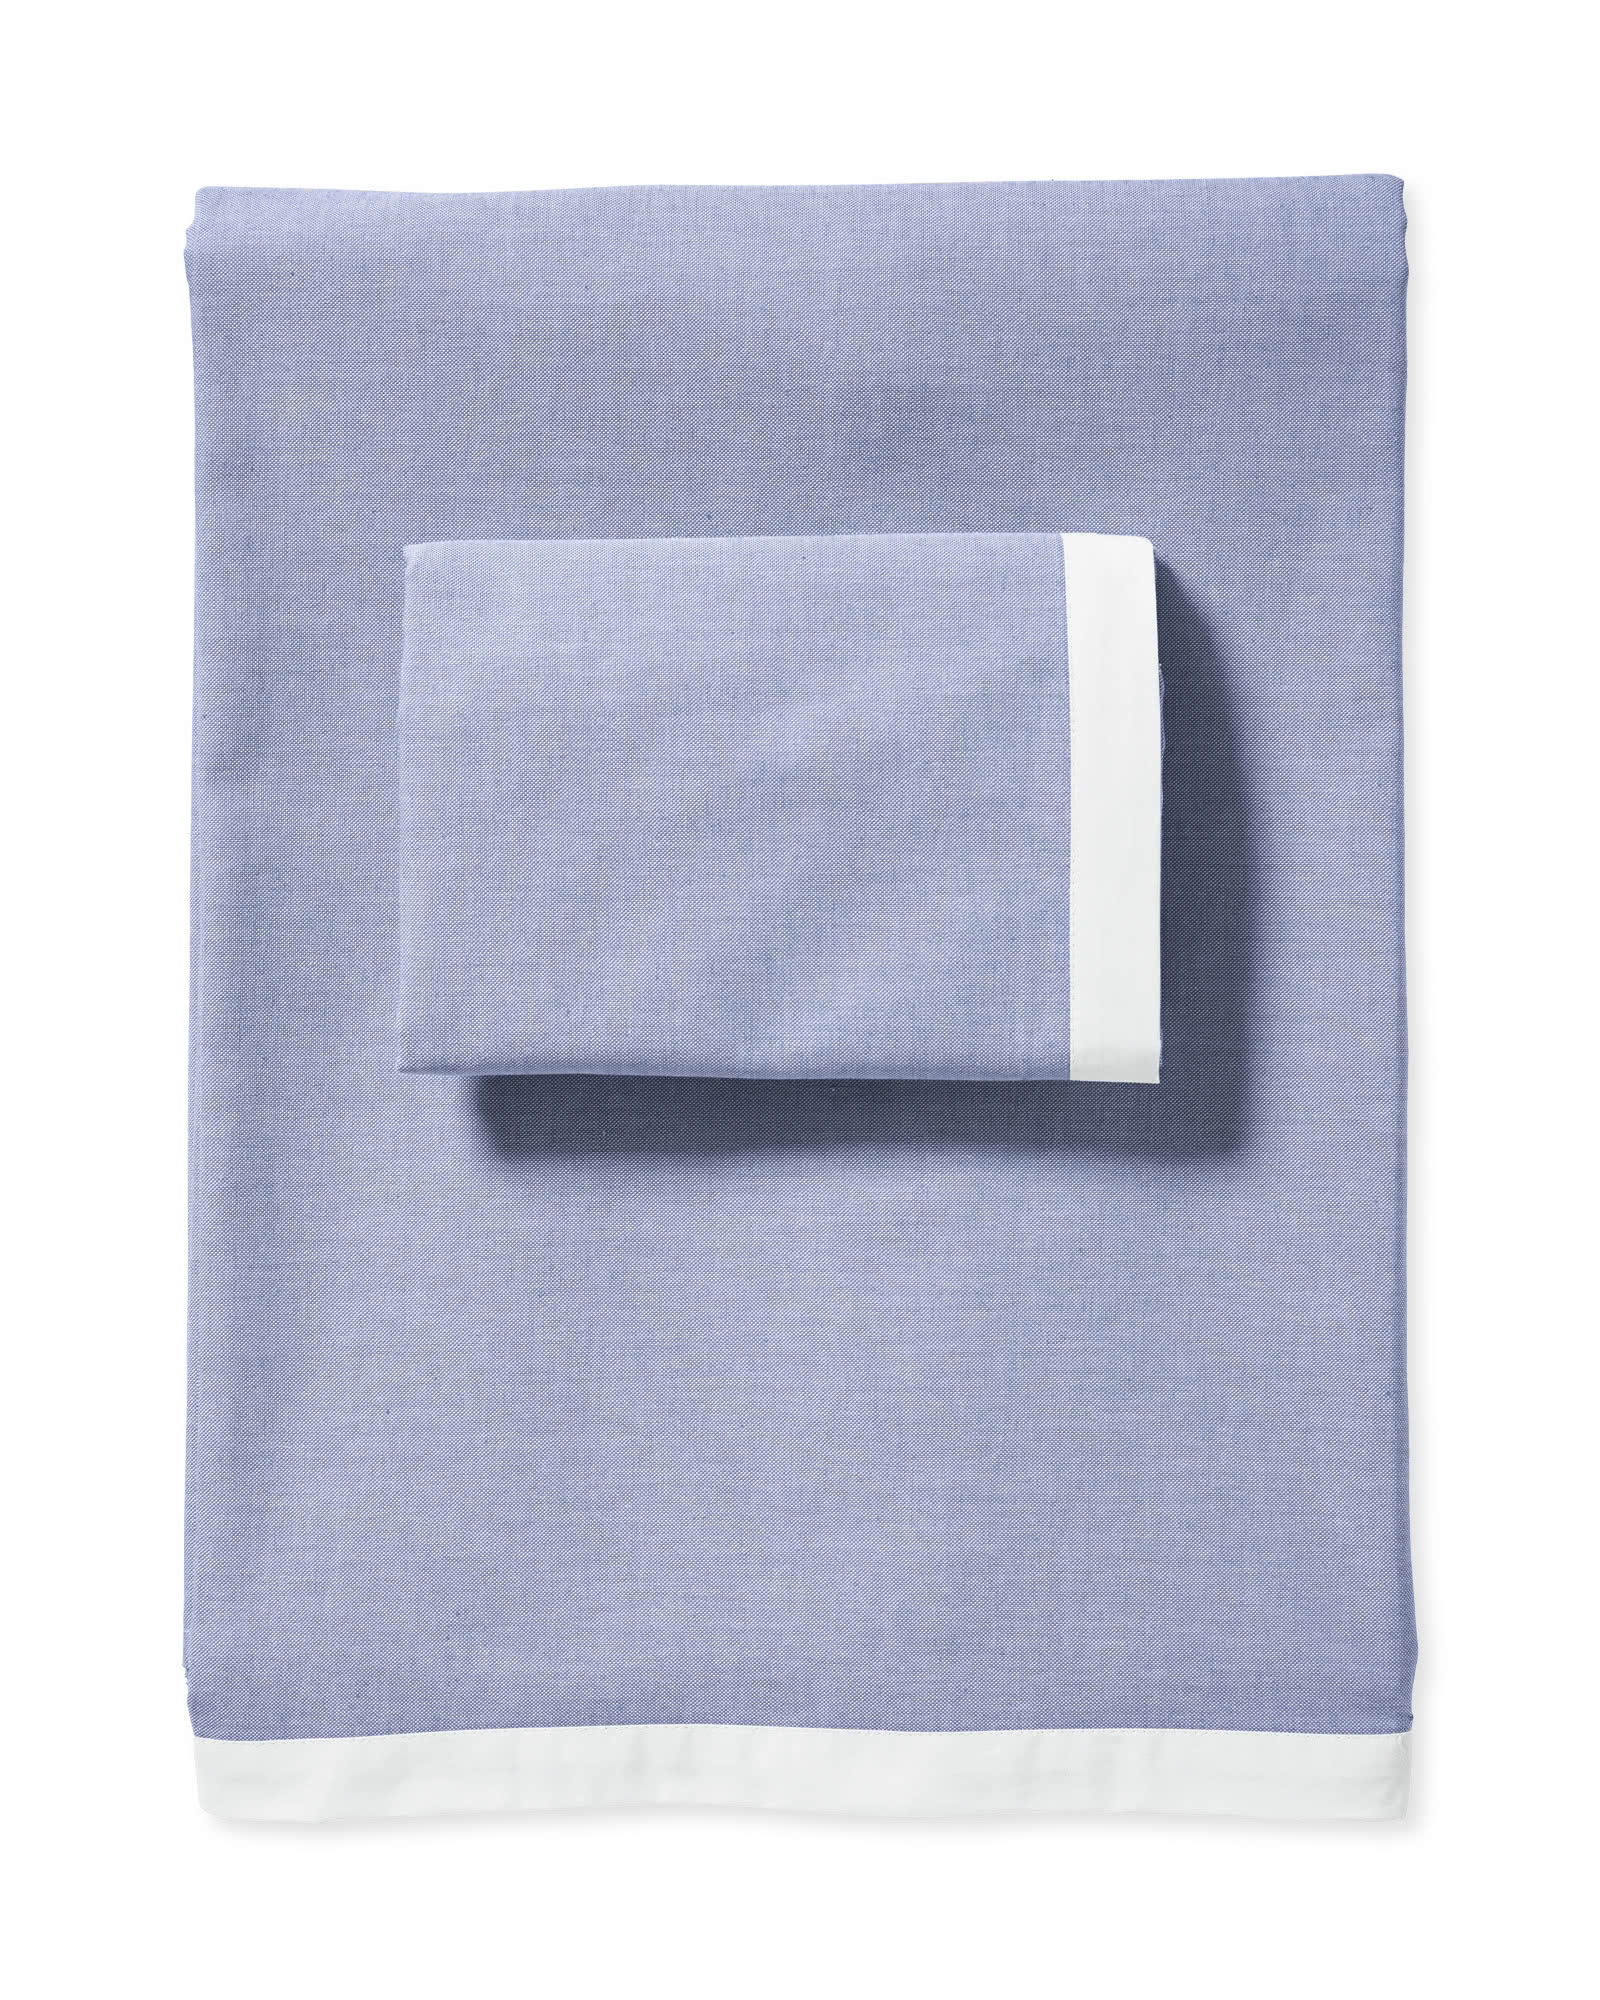 Wainscott Sheet Set, Chambray